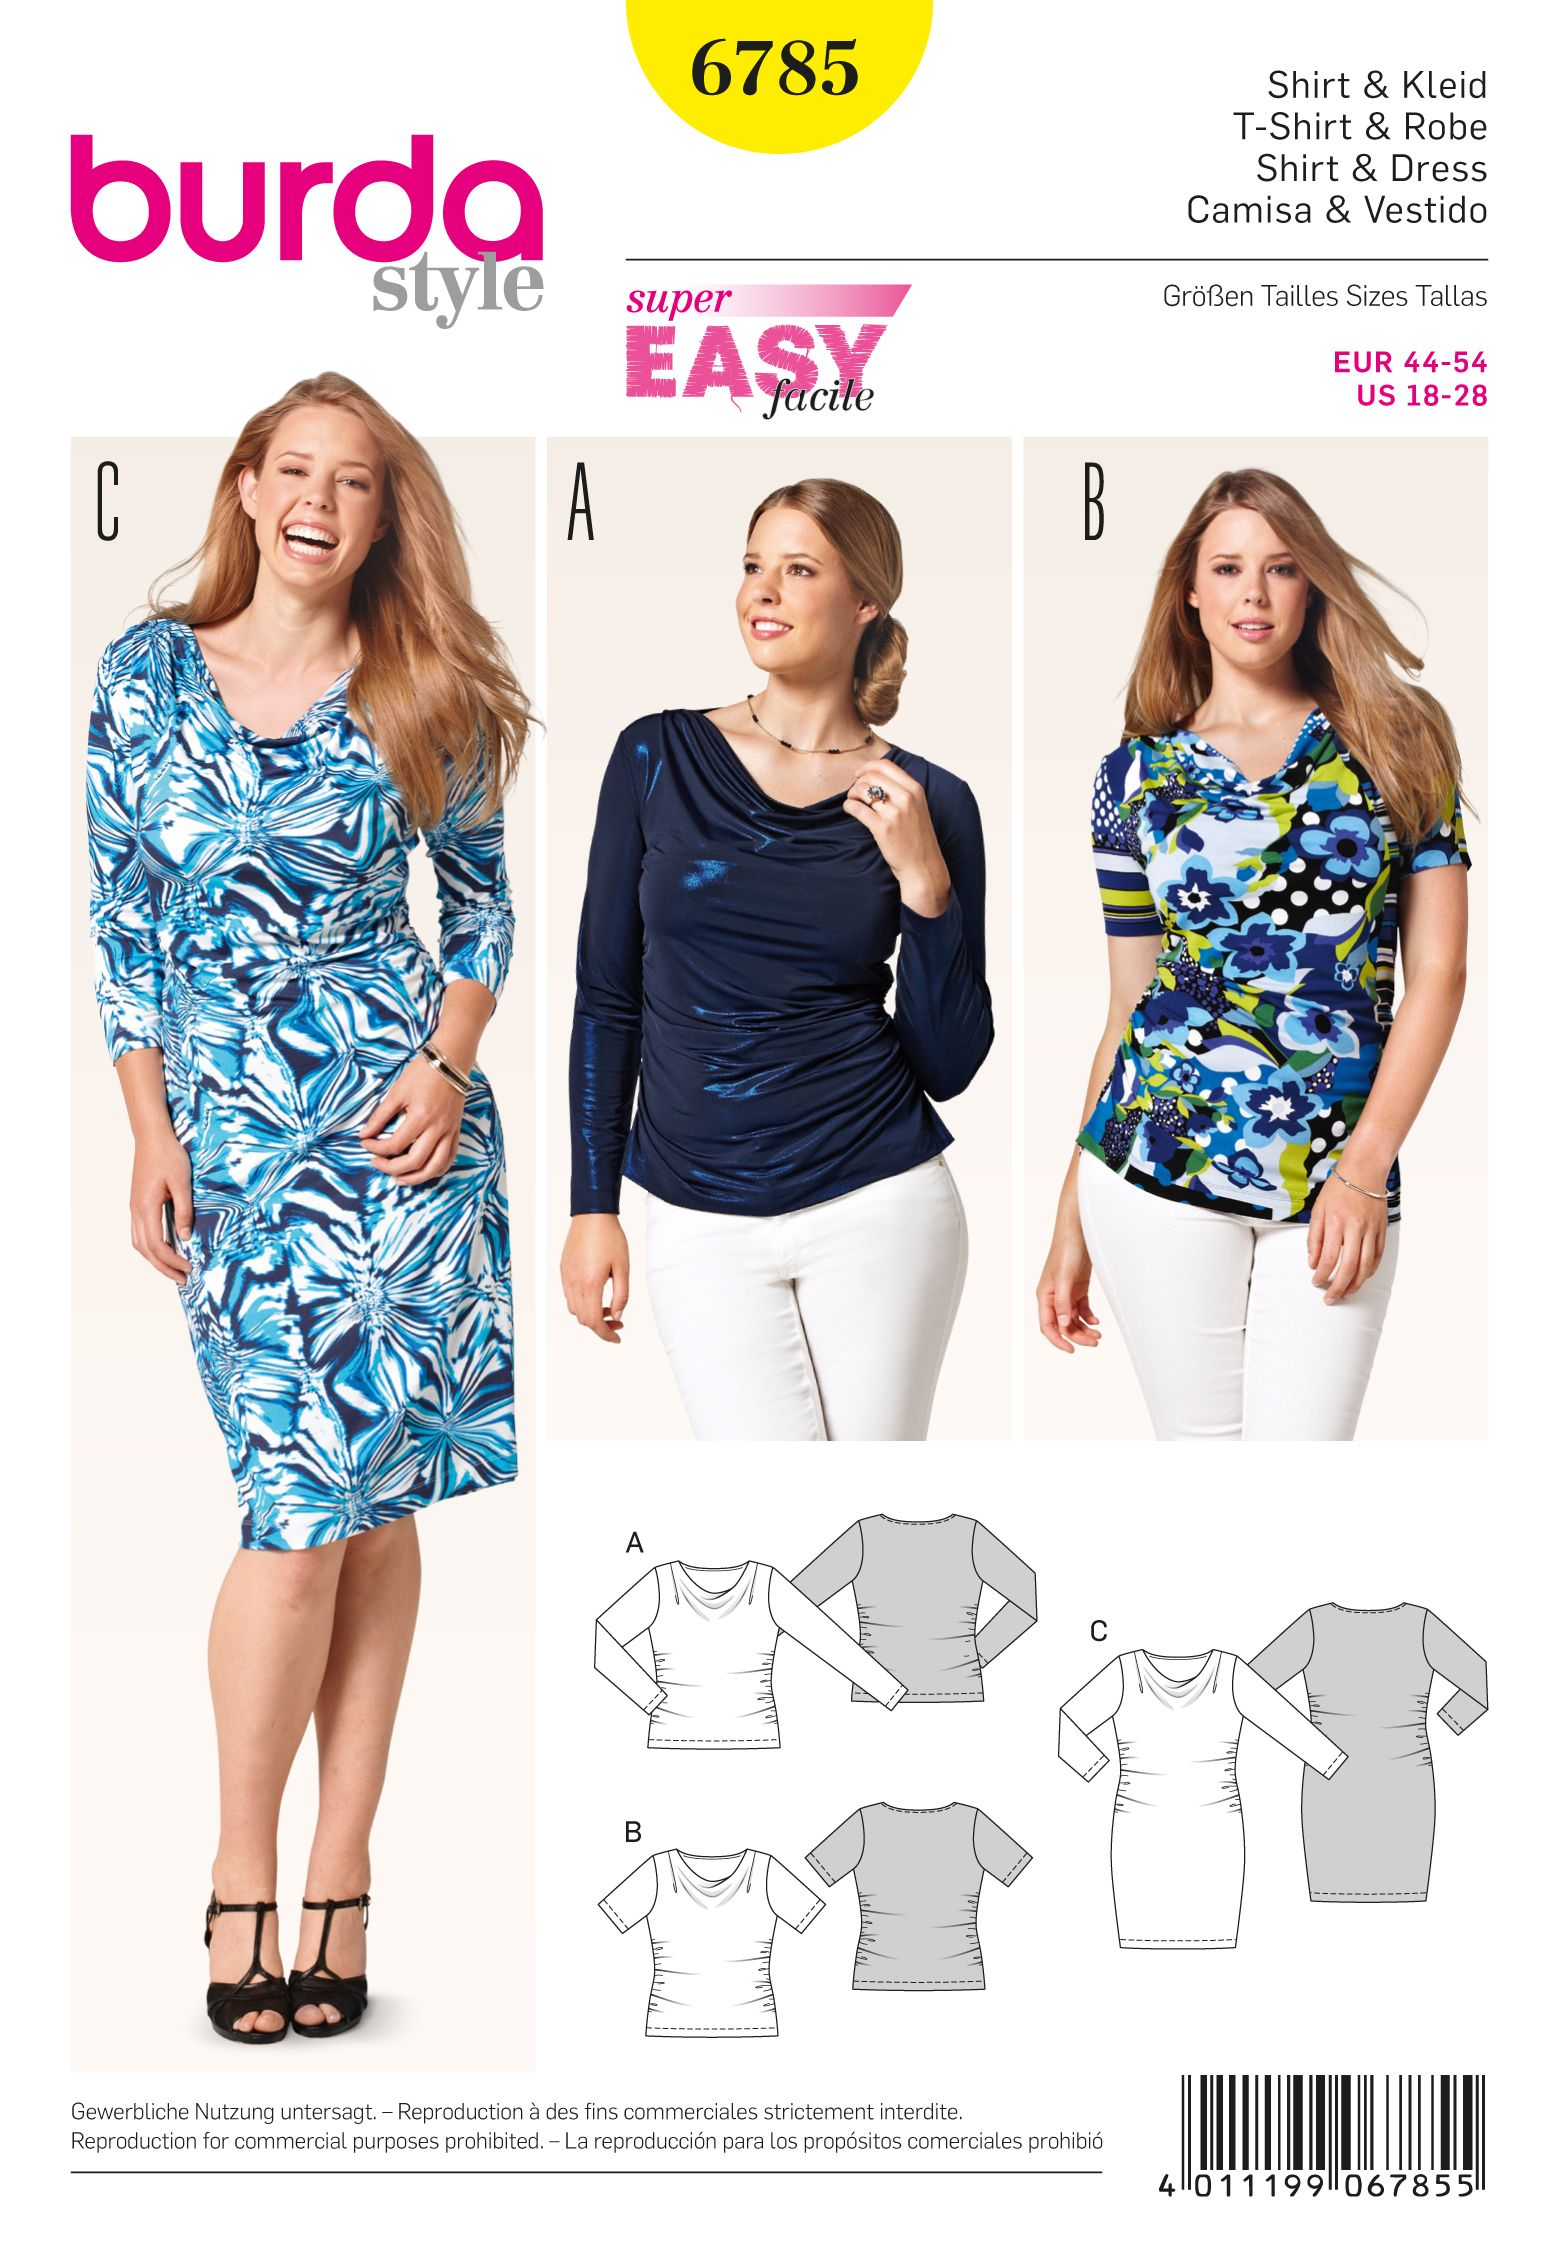 be30b0aae1c7 Burda 6785 Burda Style Plus to size 60 (34) | clothing projects and ...